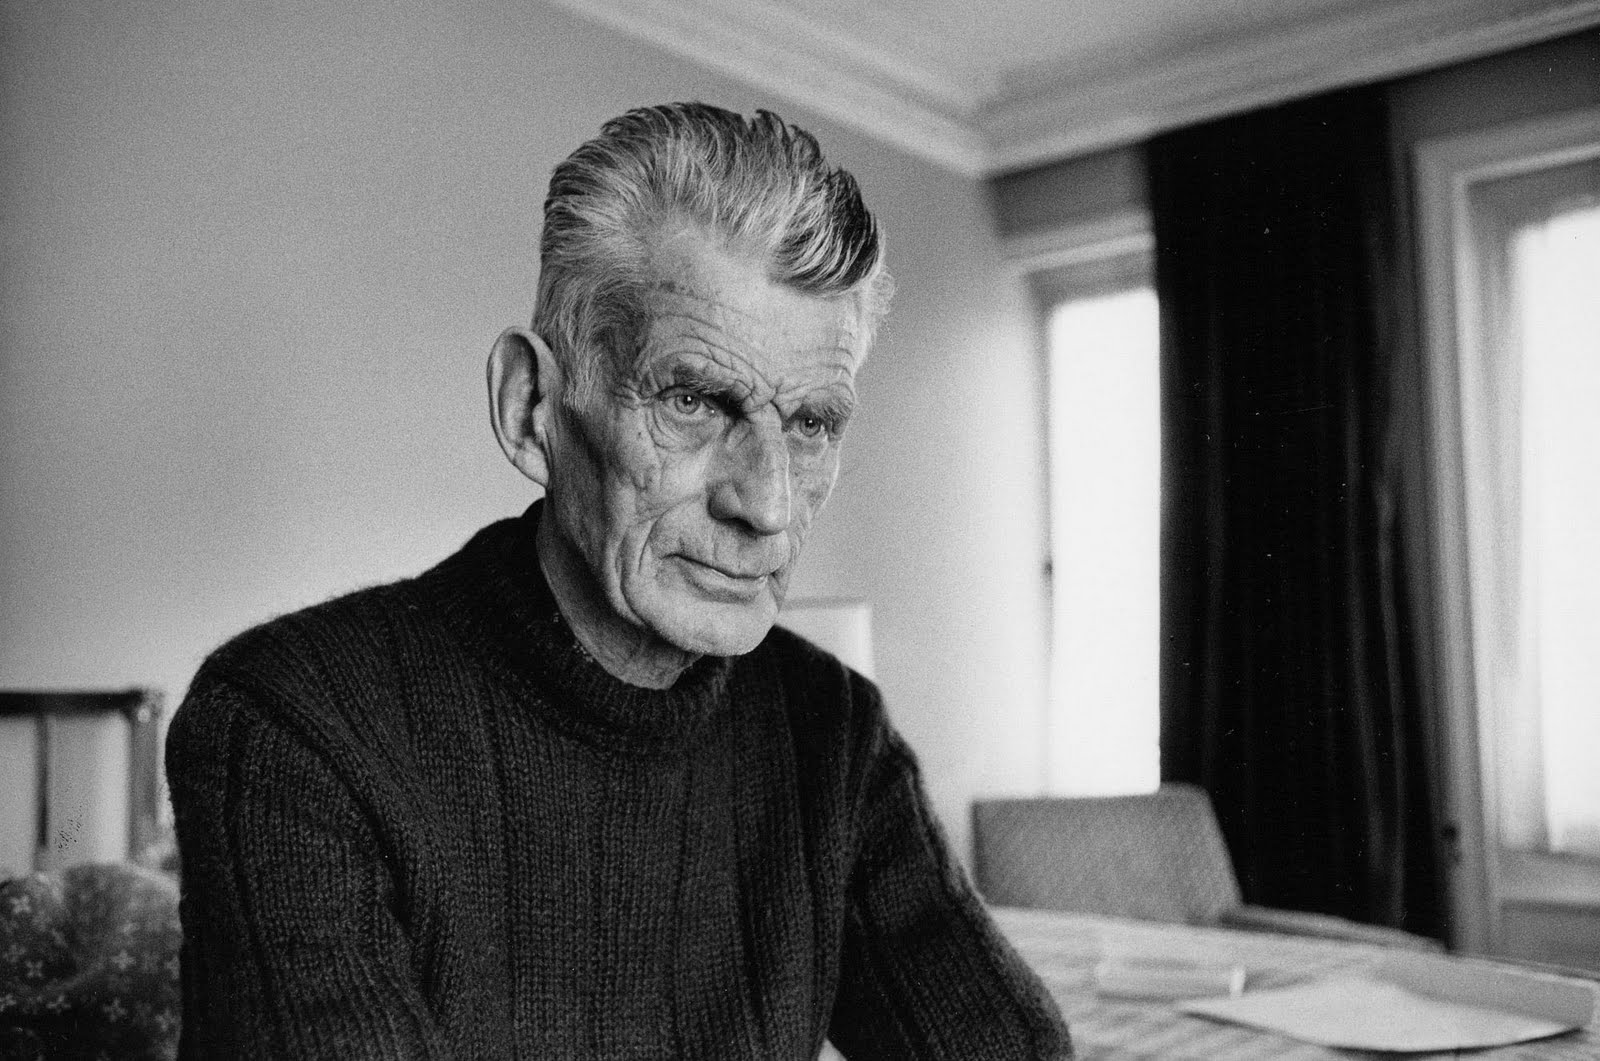 samuel beckett Samuel beckett was born in dublin in 1906 he was educated at portora royal  school and trinity college, dublin, where he graduated in 1927 his made his.